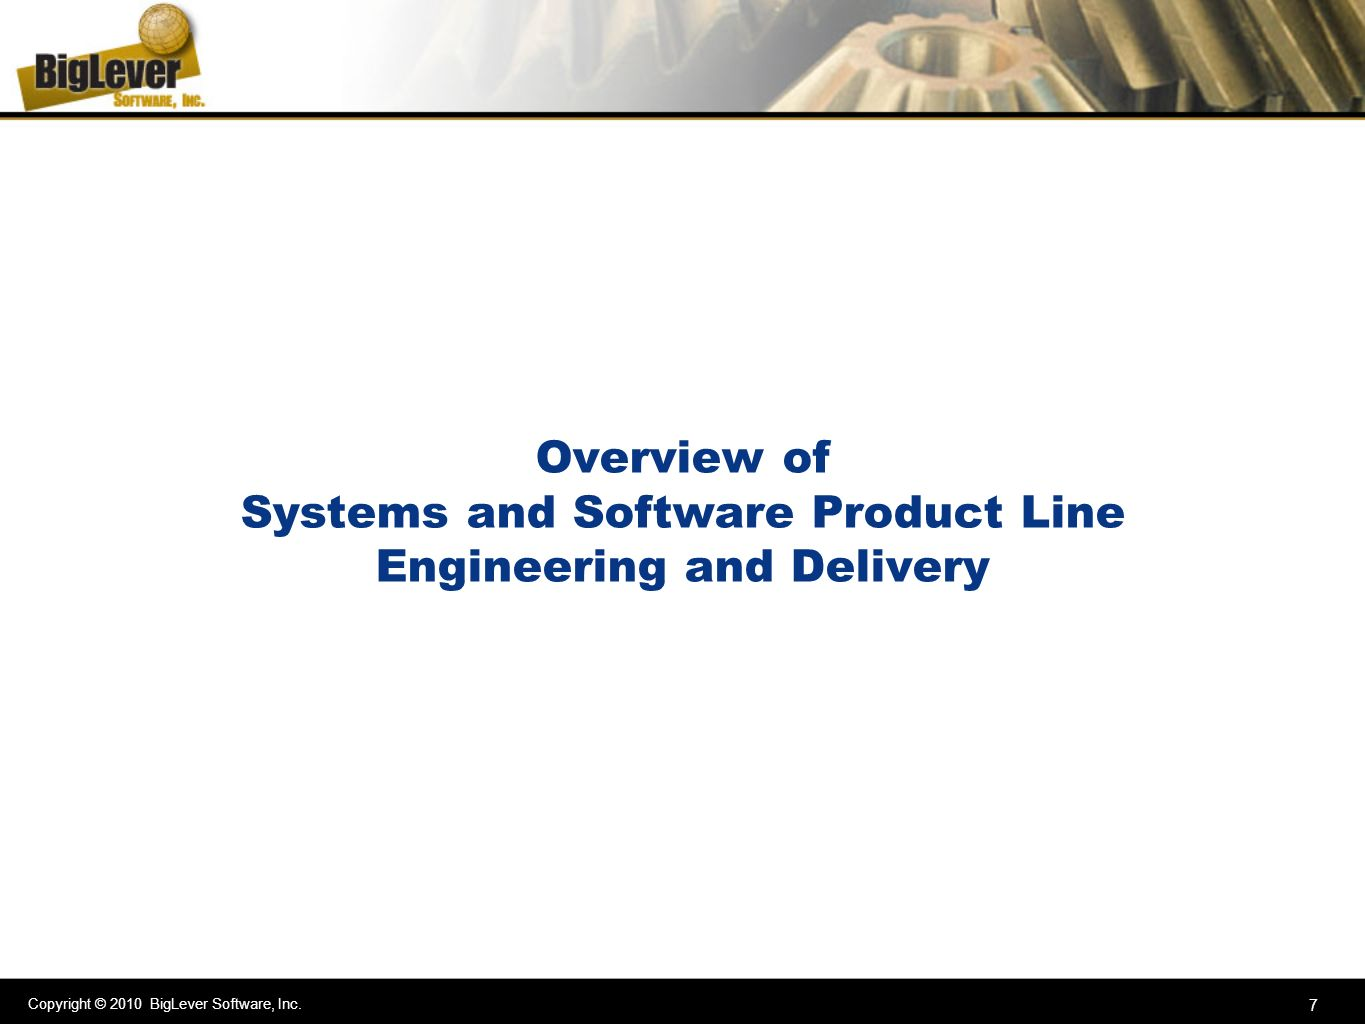 Overview of Systems and Software Product Line Engineering and Delivery